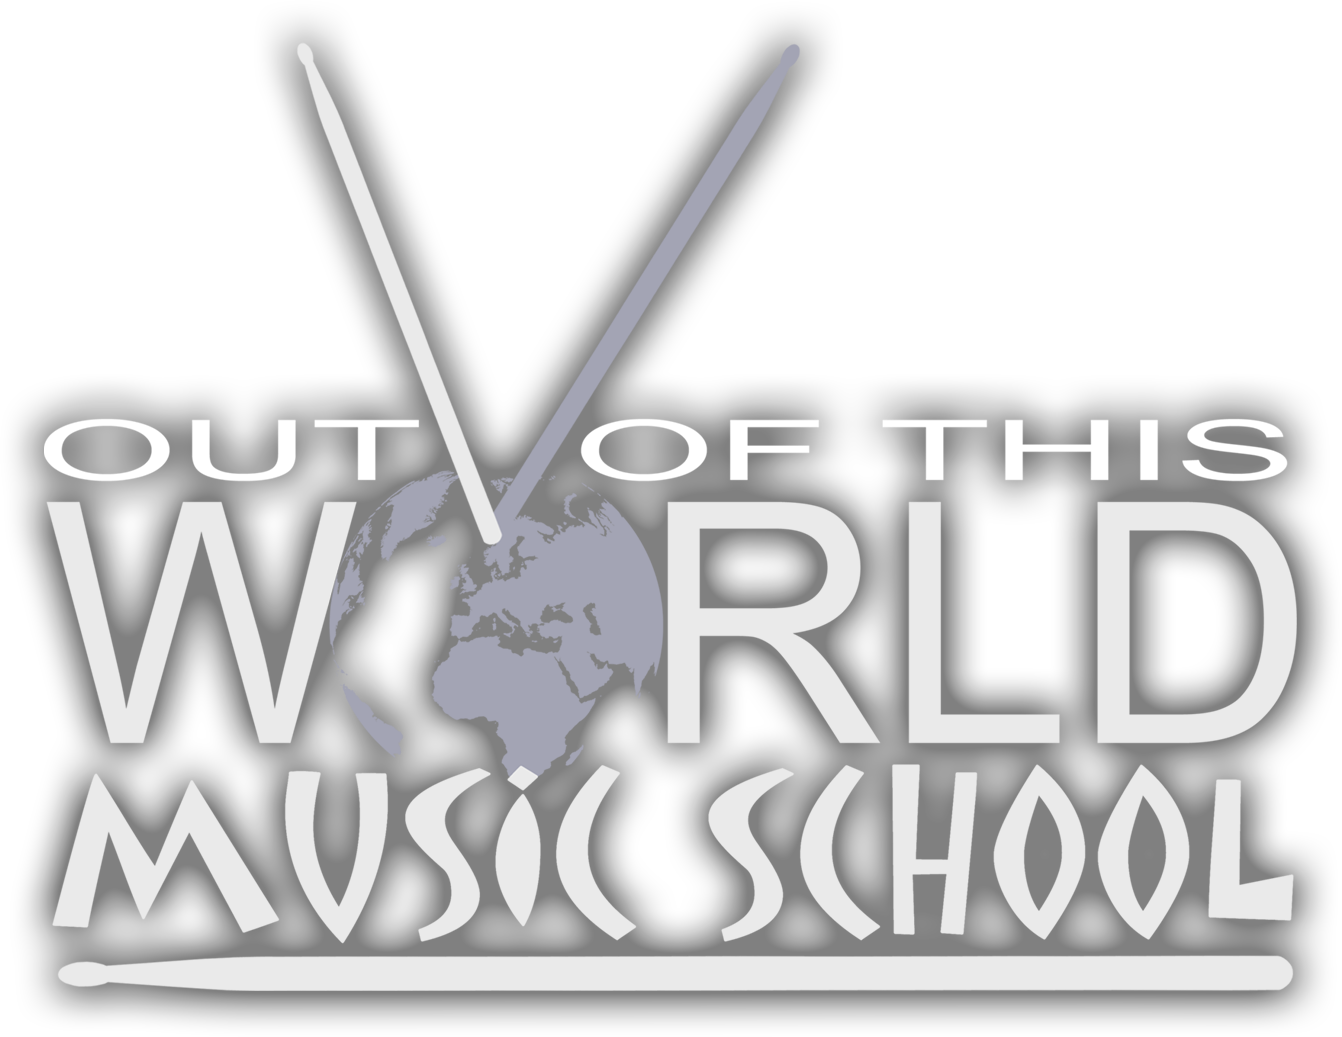 Out of this World Music School